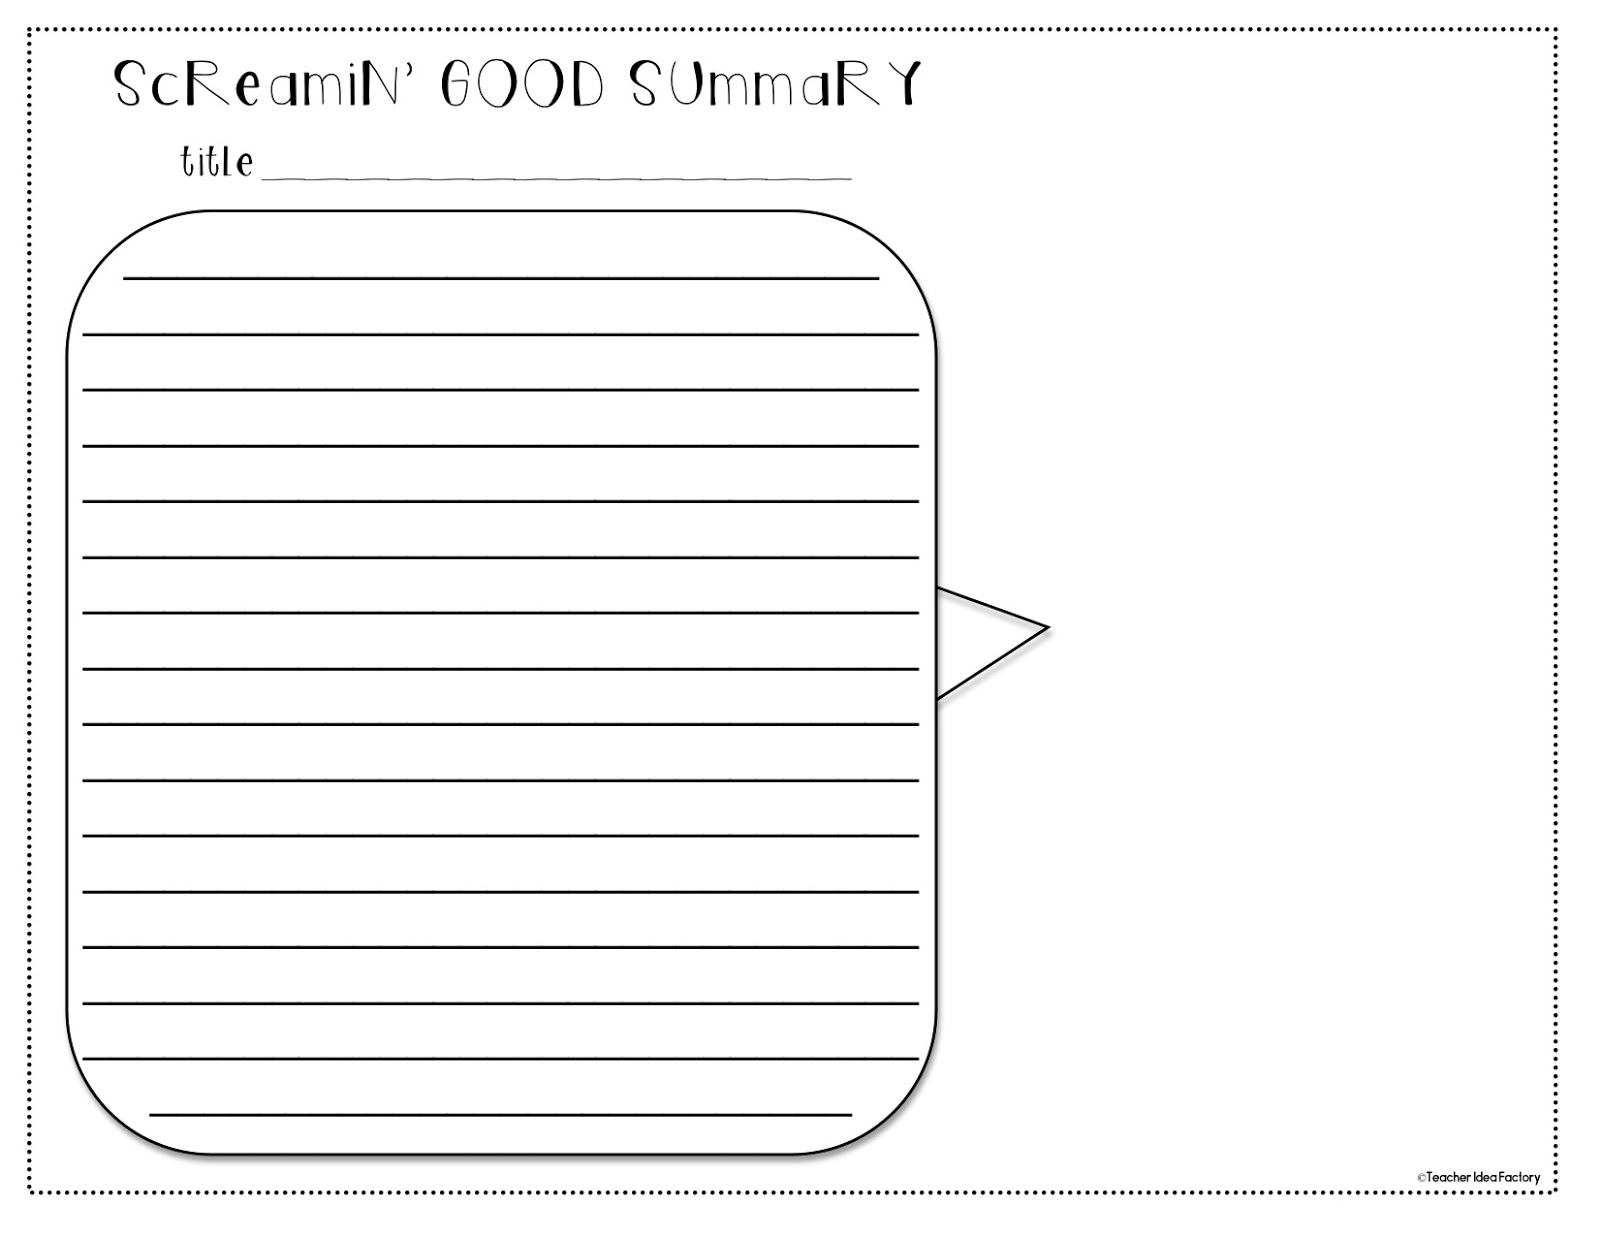 summary worksheet template Free reading comprehension worksheets, vocabulary worksheets, book report forms, and other reading worksheets.